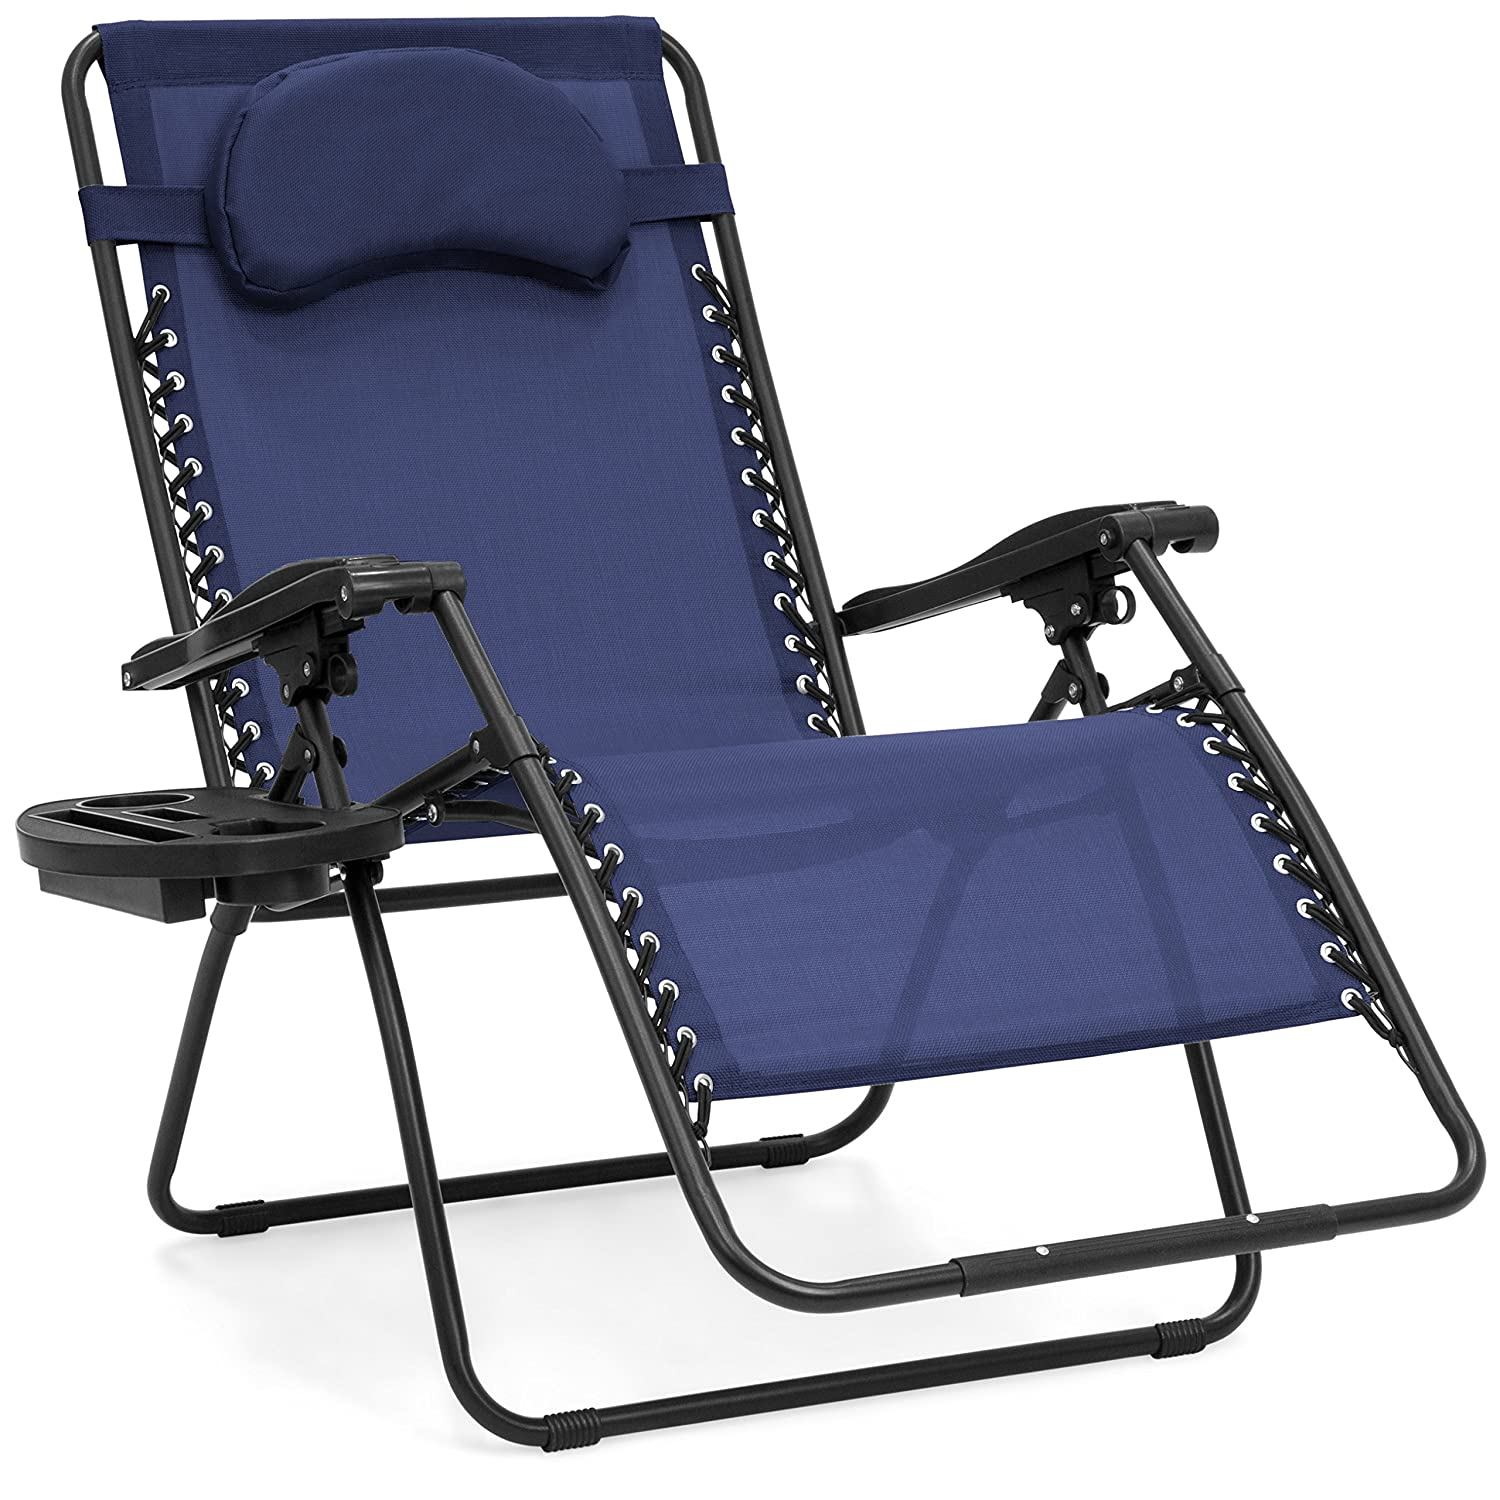 Innovative Oversize Zero Gravity Patio Lounger Reclining Chair with Detachable Cup Holder Tray on the Side, Ergonomic Armrests, Removable Pillow, Lockable Reclining System, Navy + Expert Home Guide